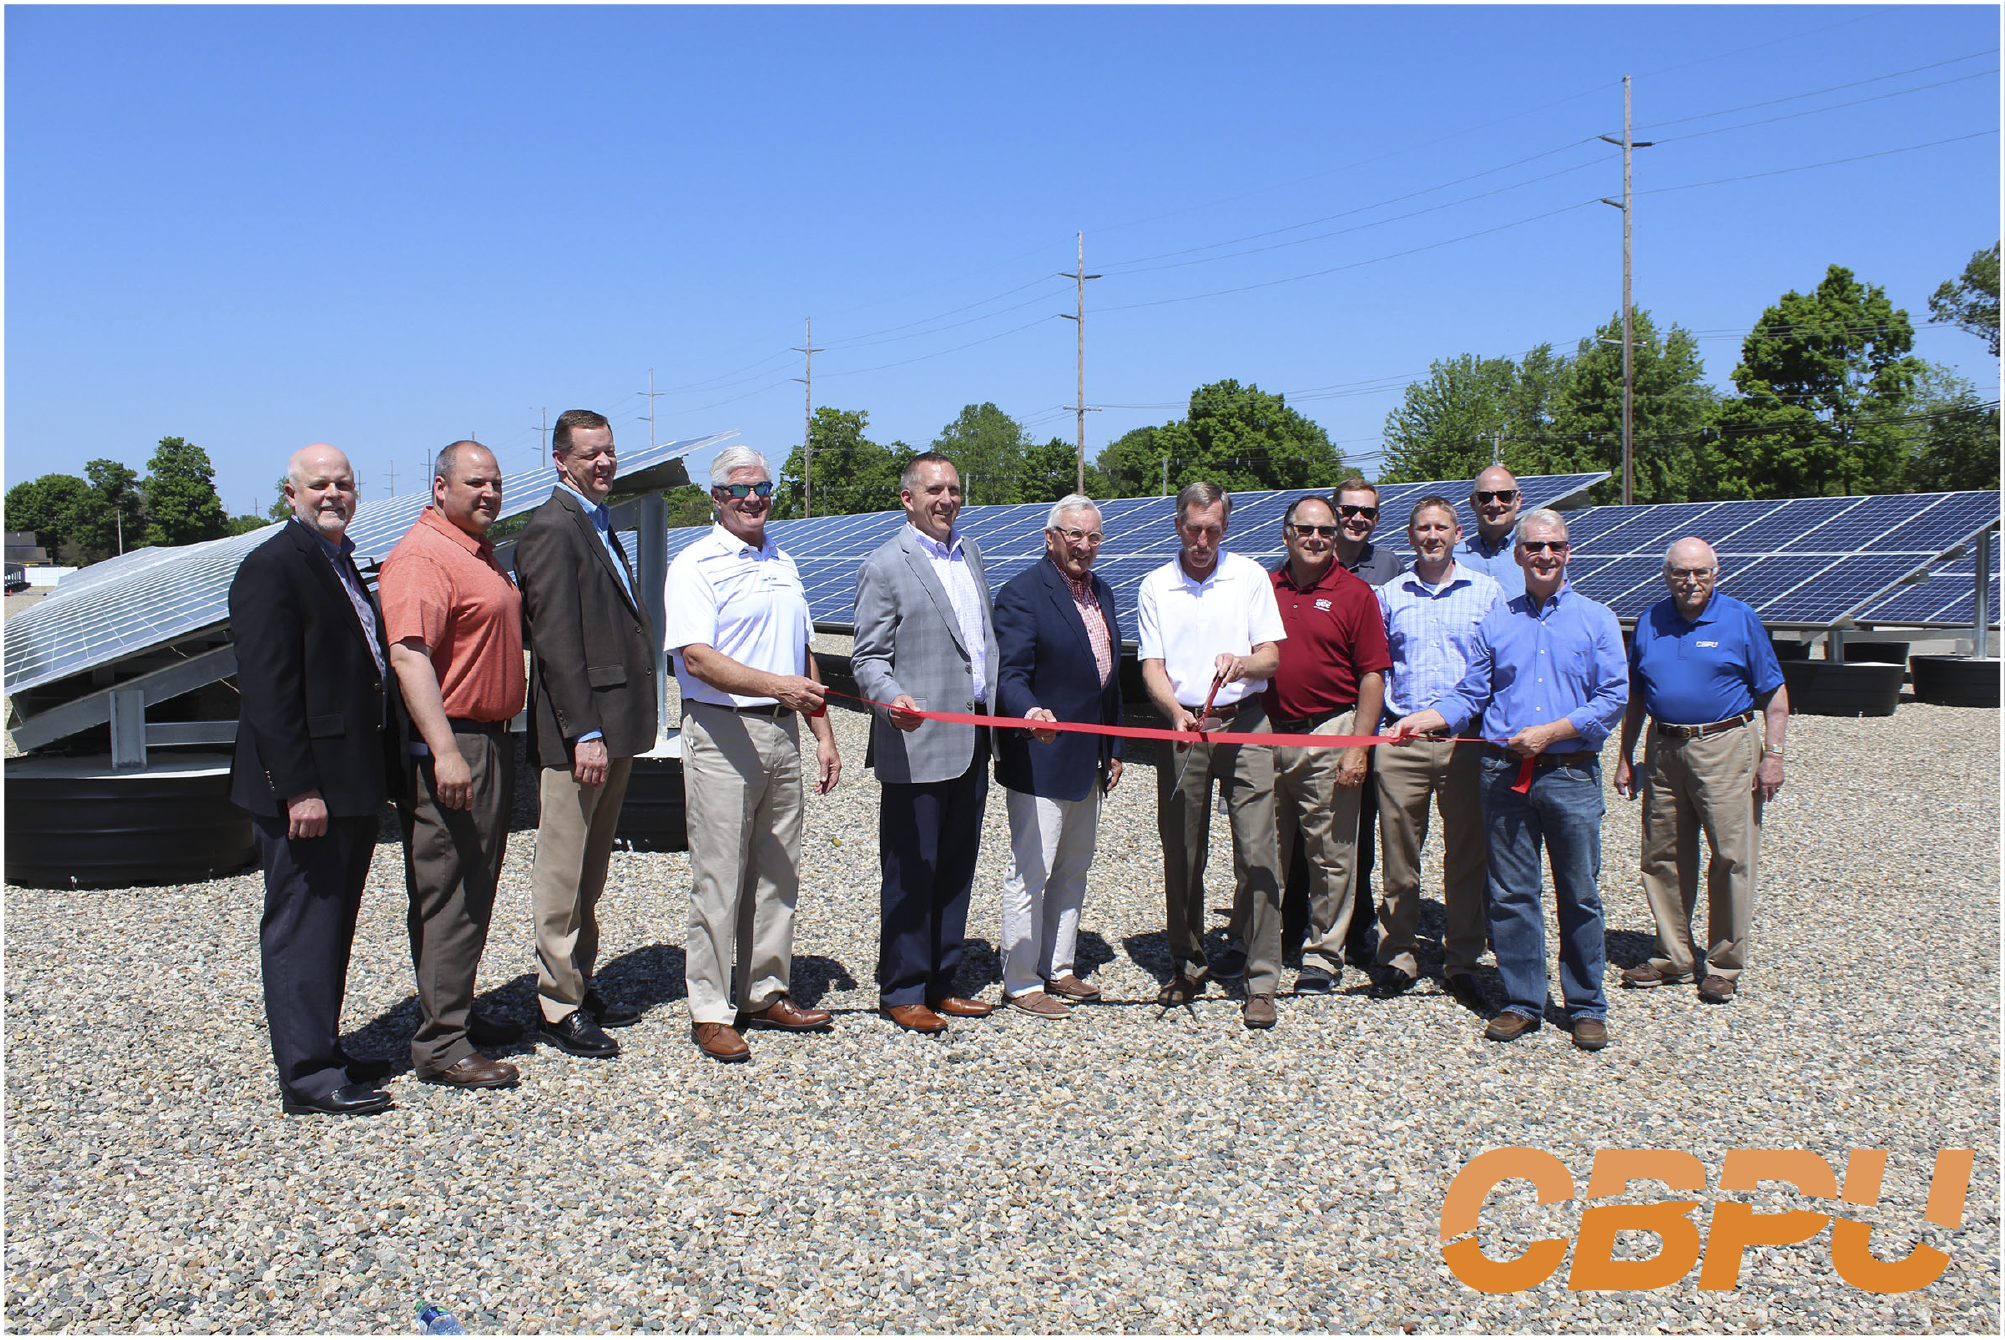 Solar Field Ribbon Cutting